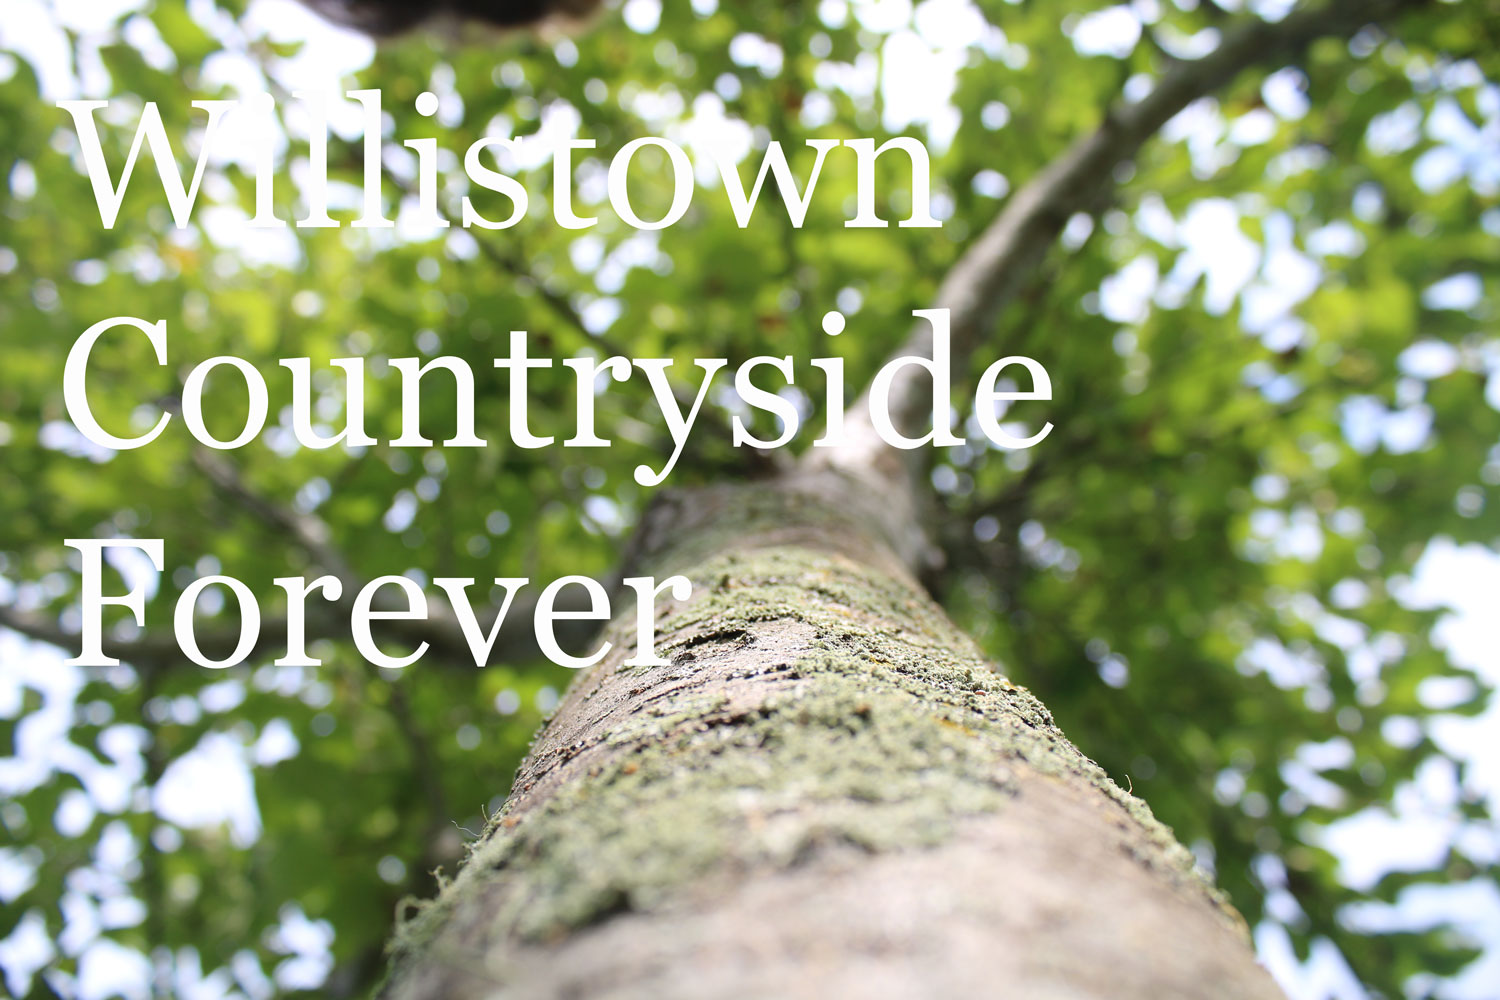 WillistownCountrysideForever